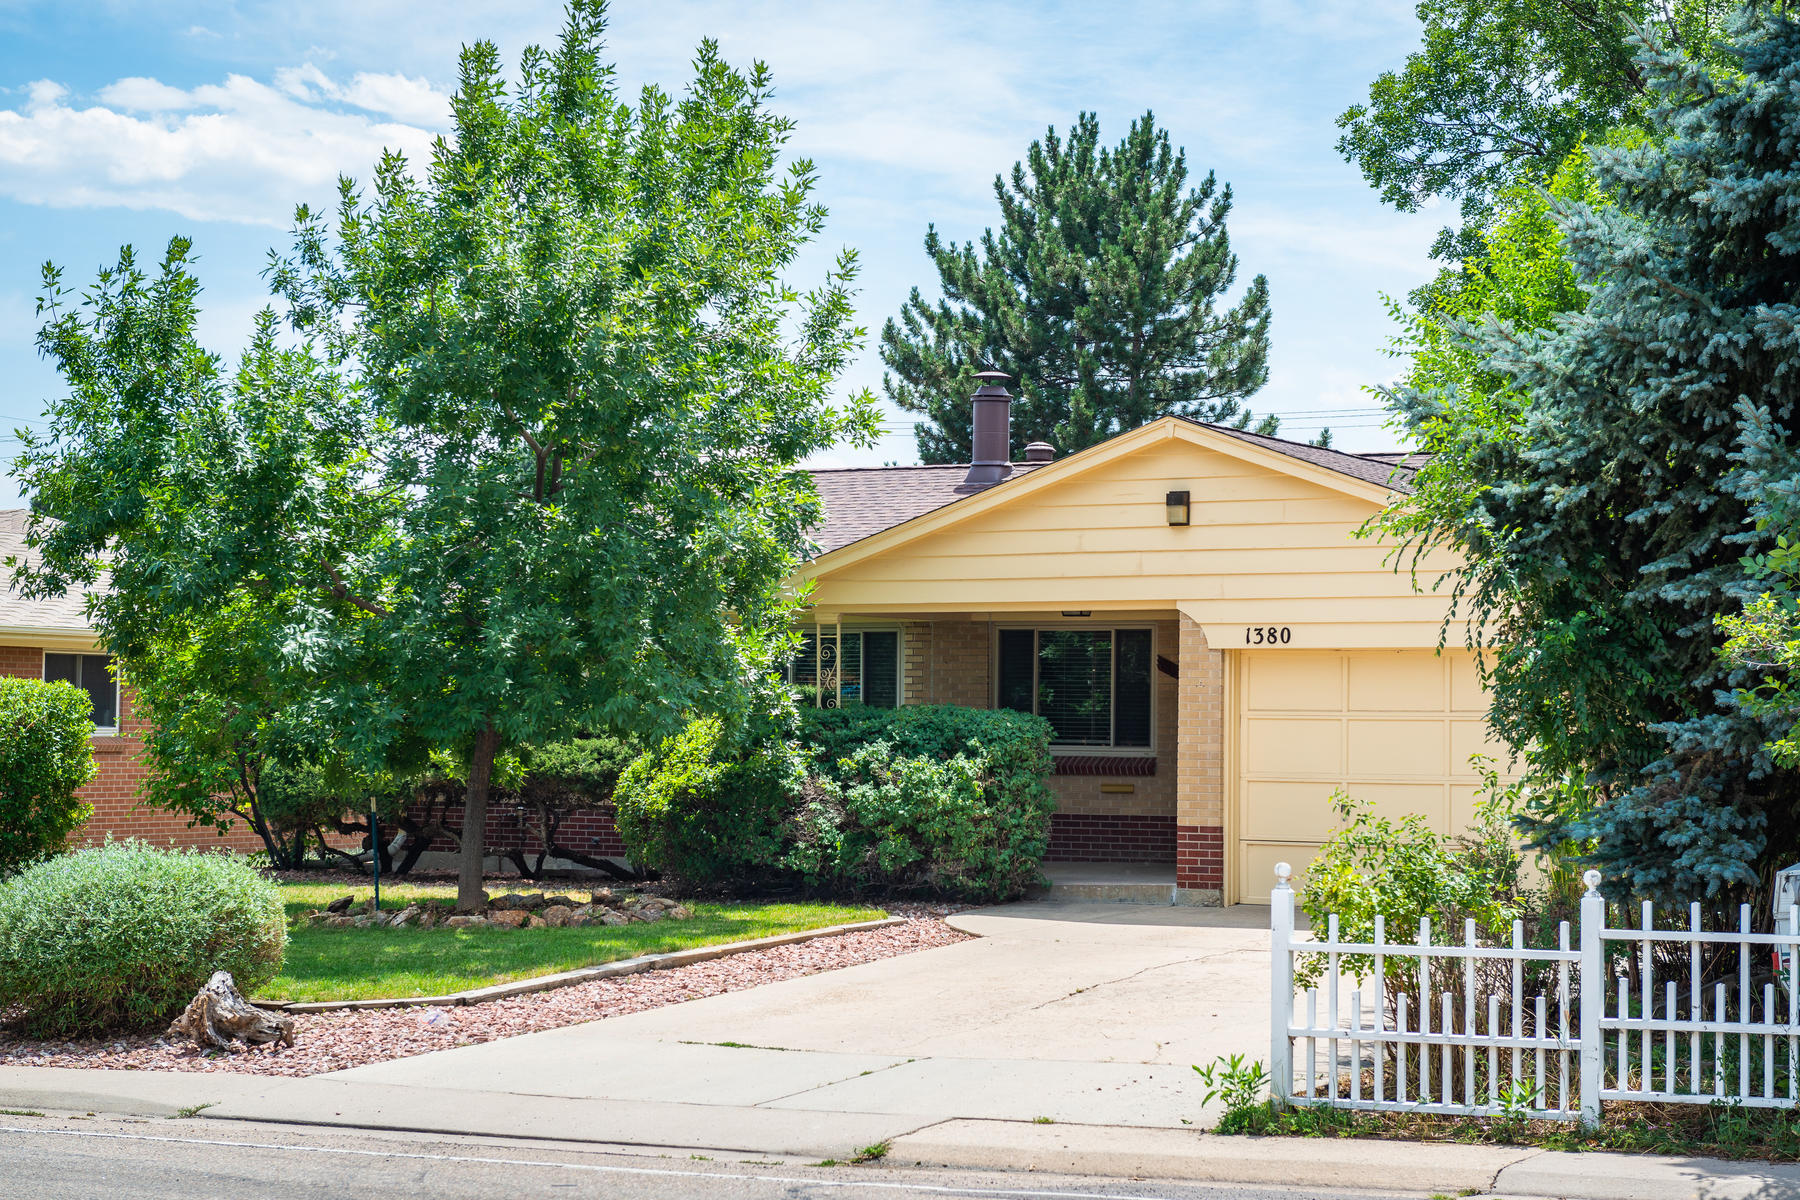 Single Family Home for Active at Wonderful Brick Ranch In The Popular Broomfield Heights 1380 West 6th Ave Broomfield, Colorado 80020 United States